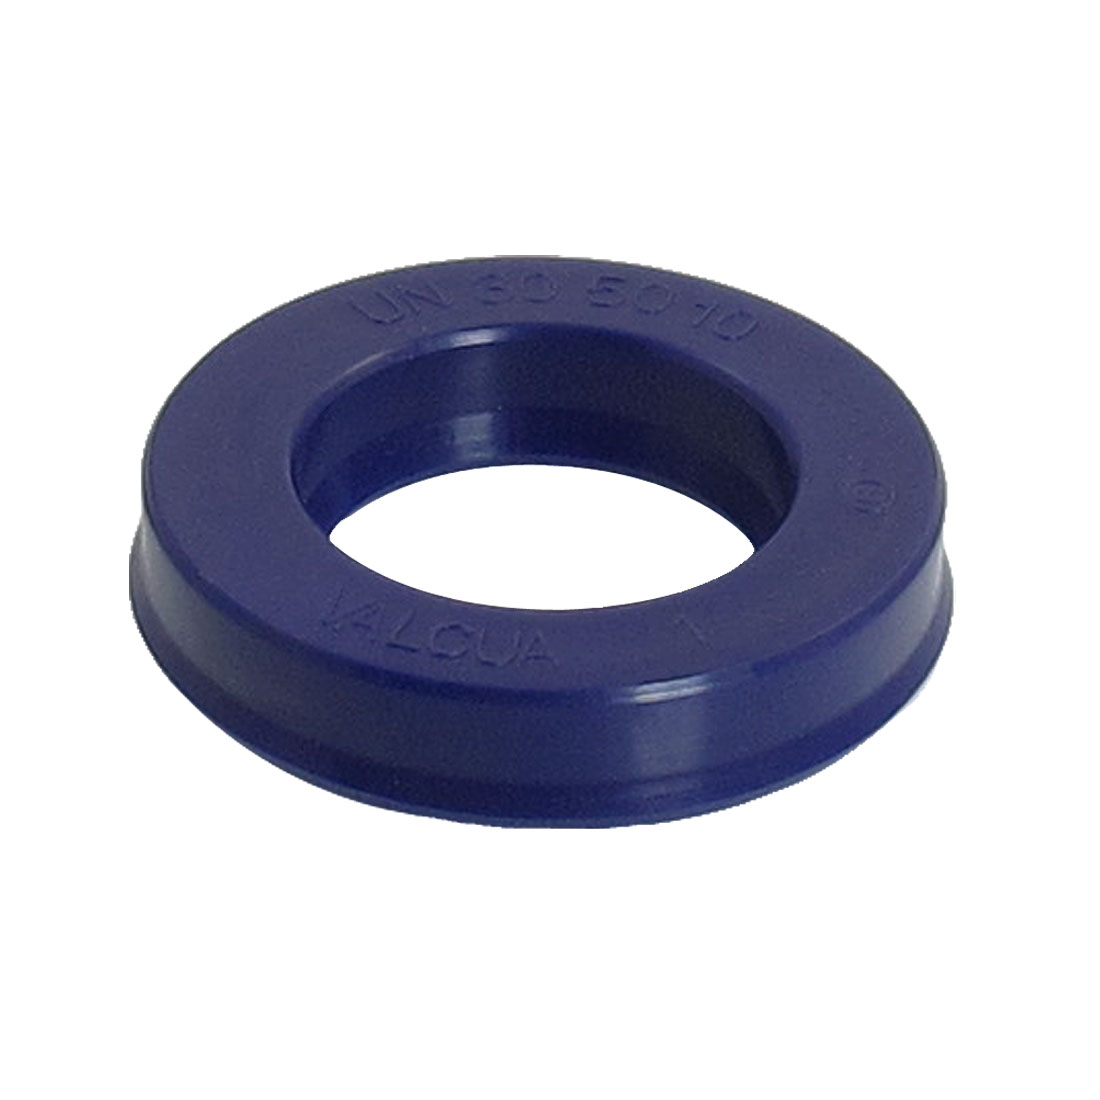 Blue PU 30mm x 50mm x 10mm Double Lip Sealing Cushion Dust Seal Ring